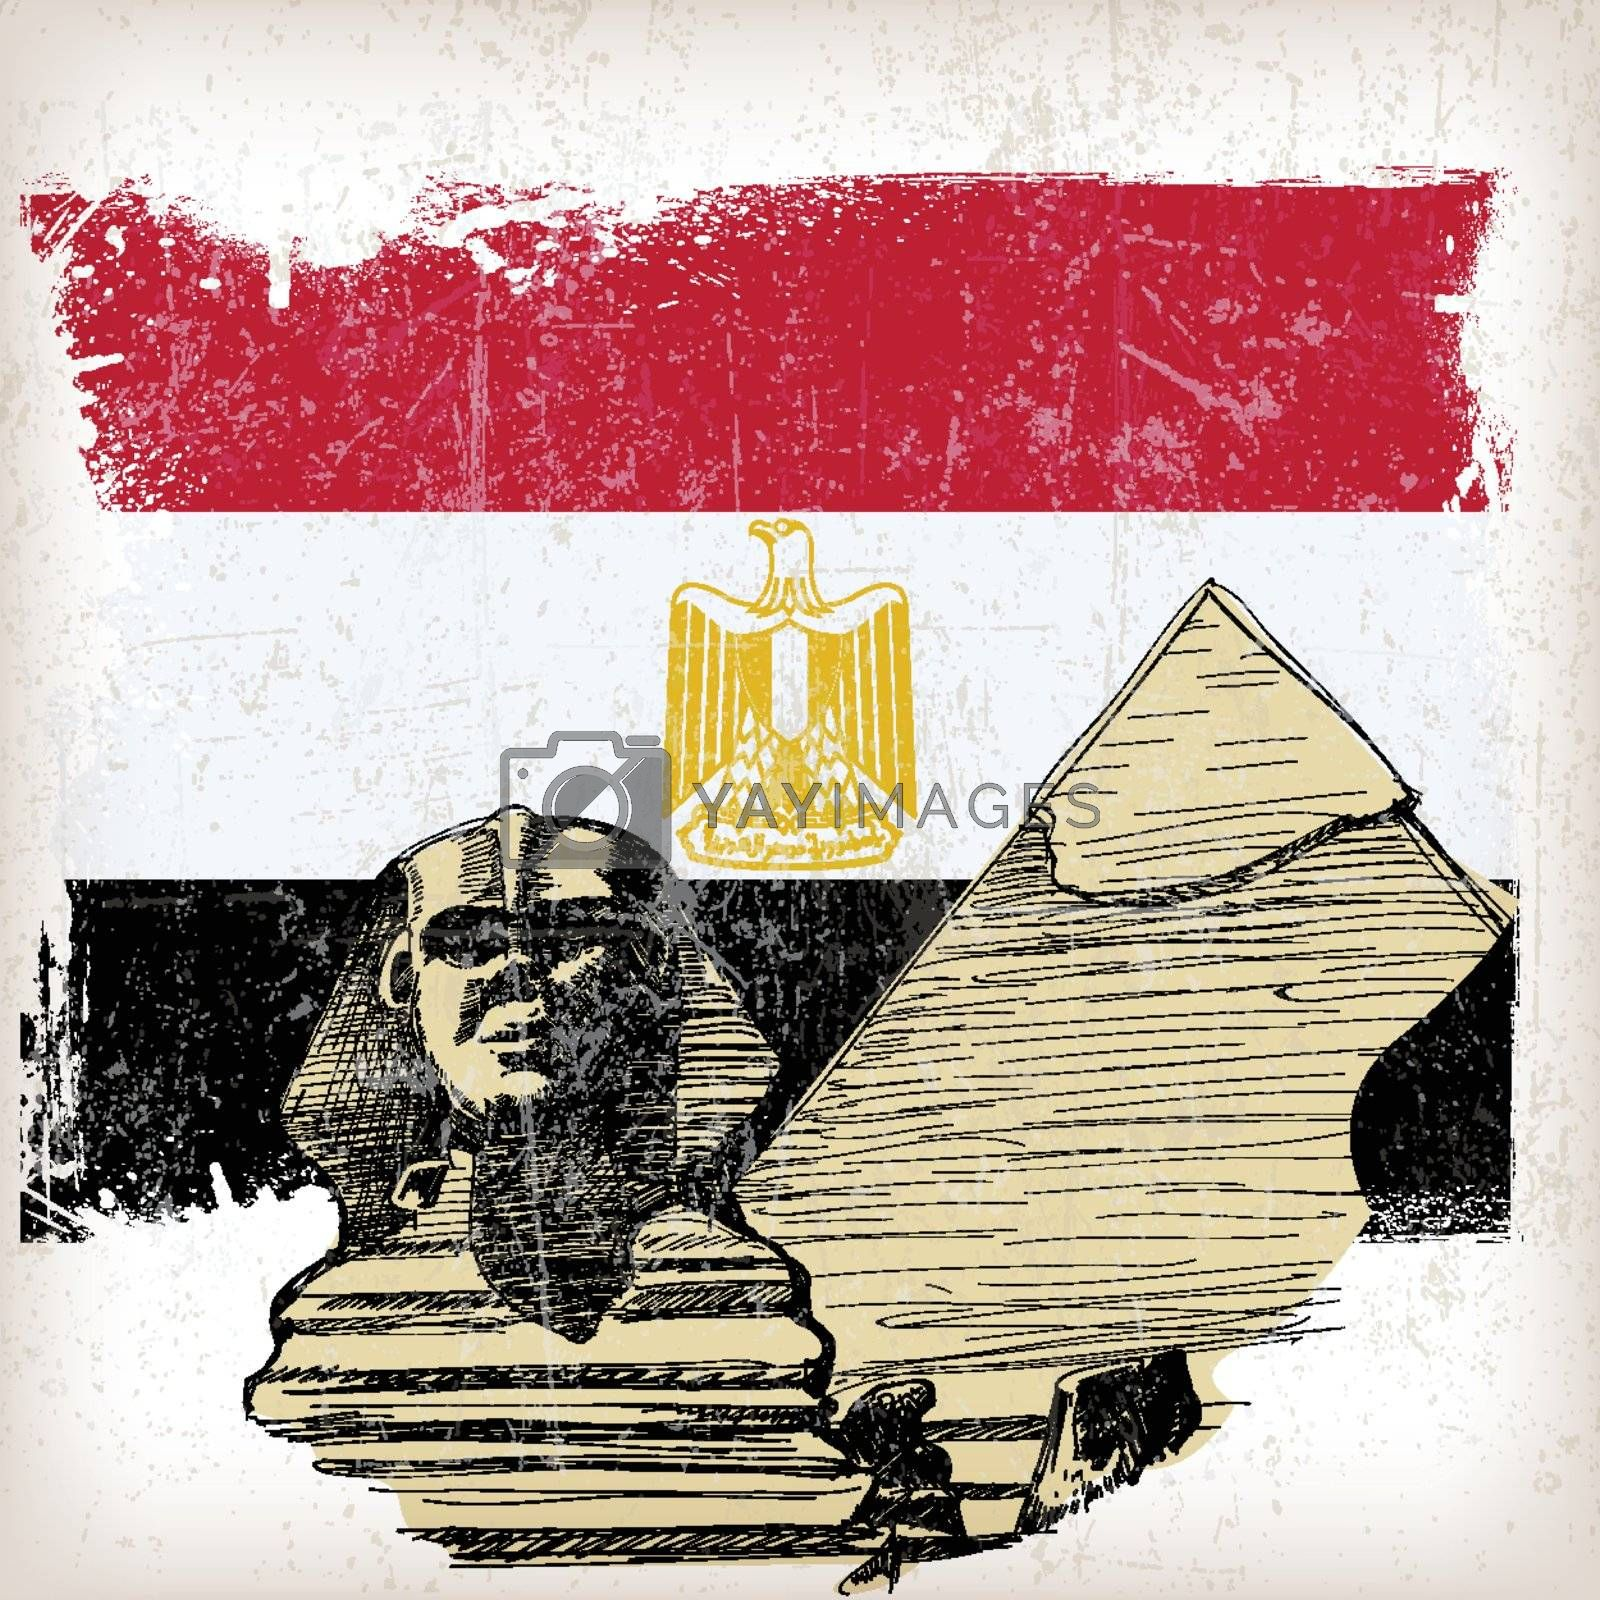 Sphinx, pyramid on Egypt flag with grunge effect